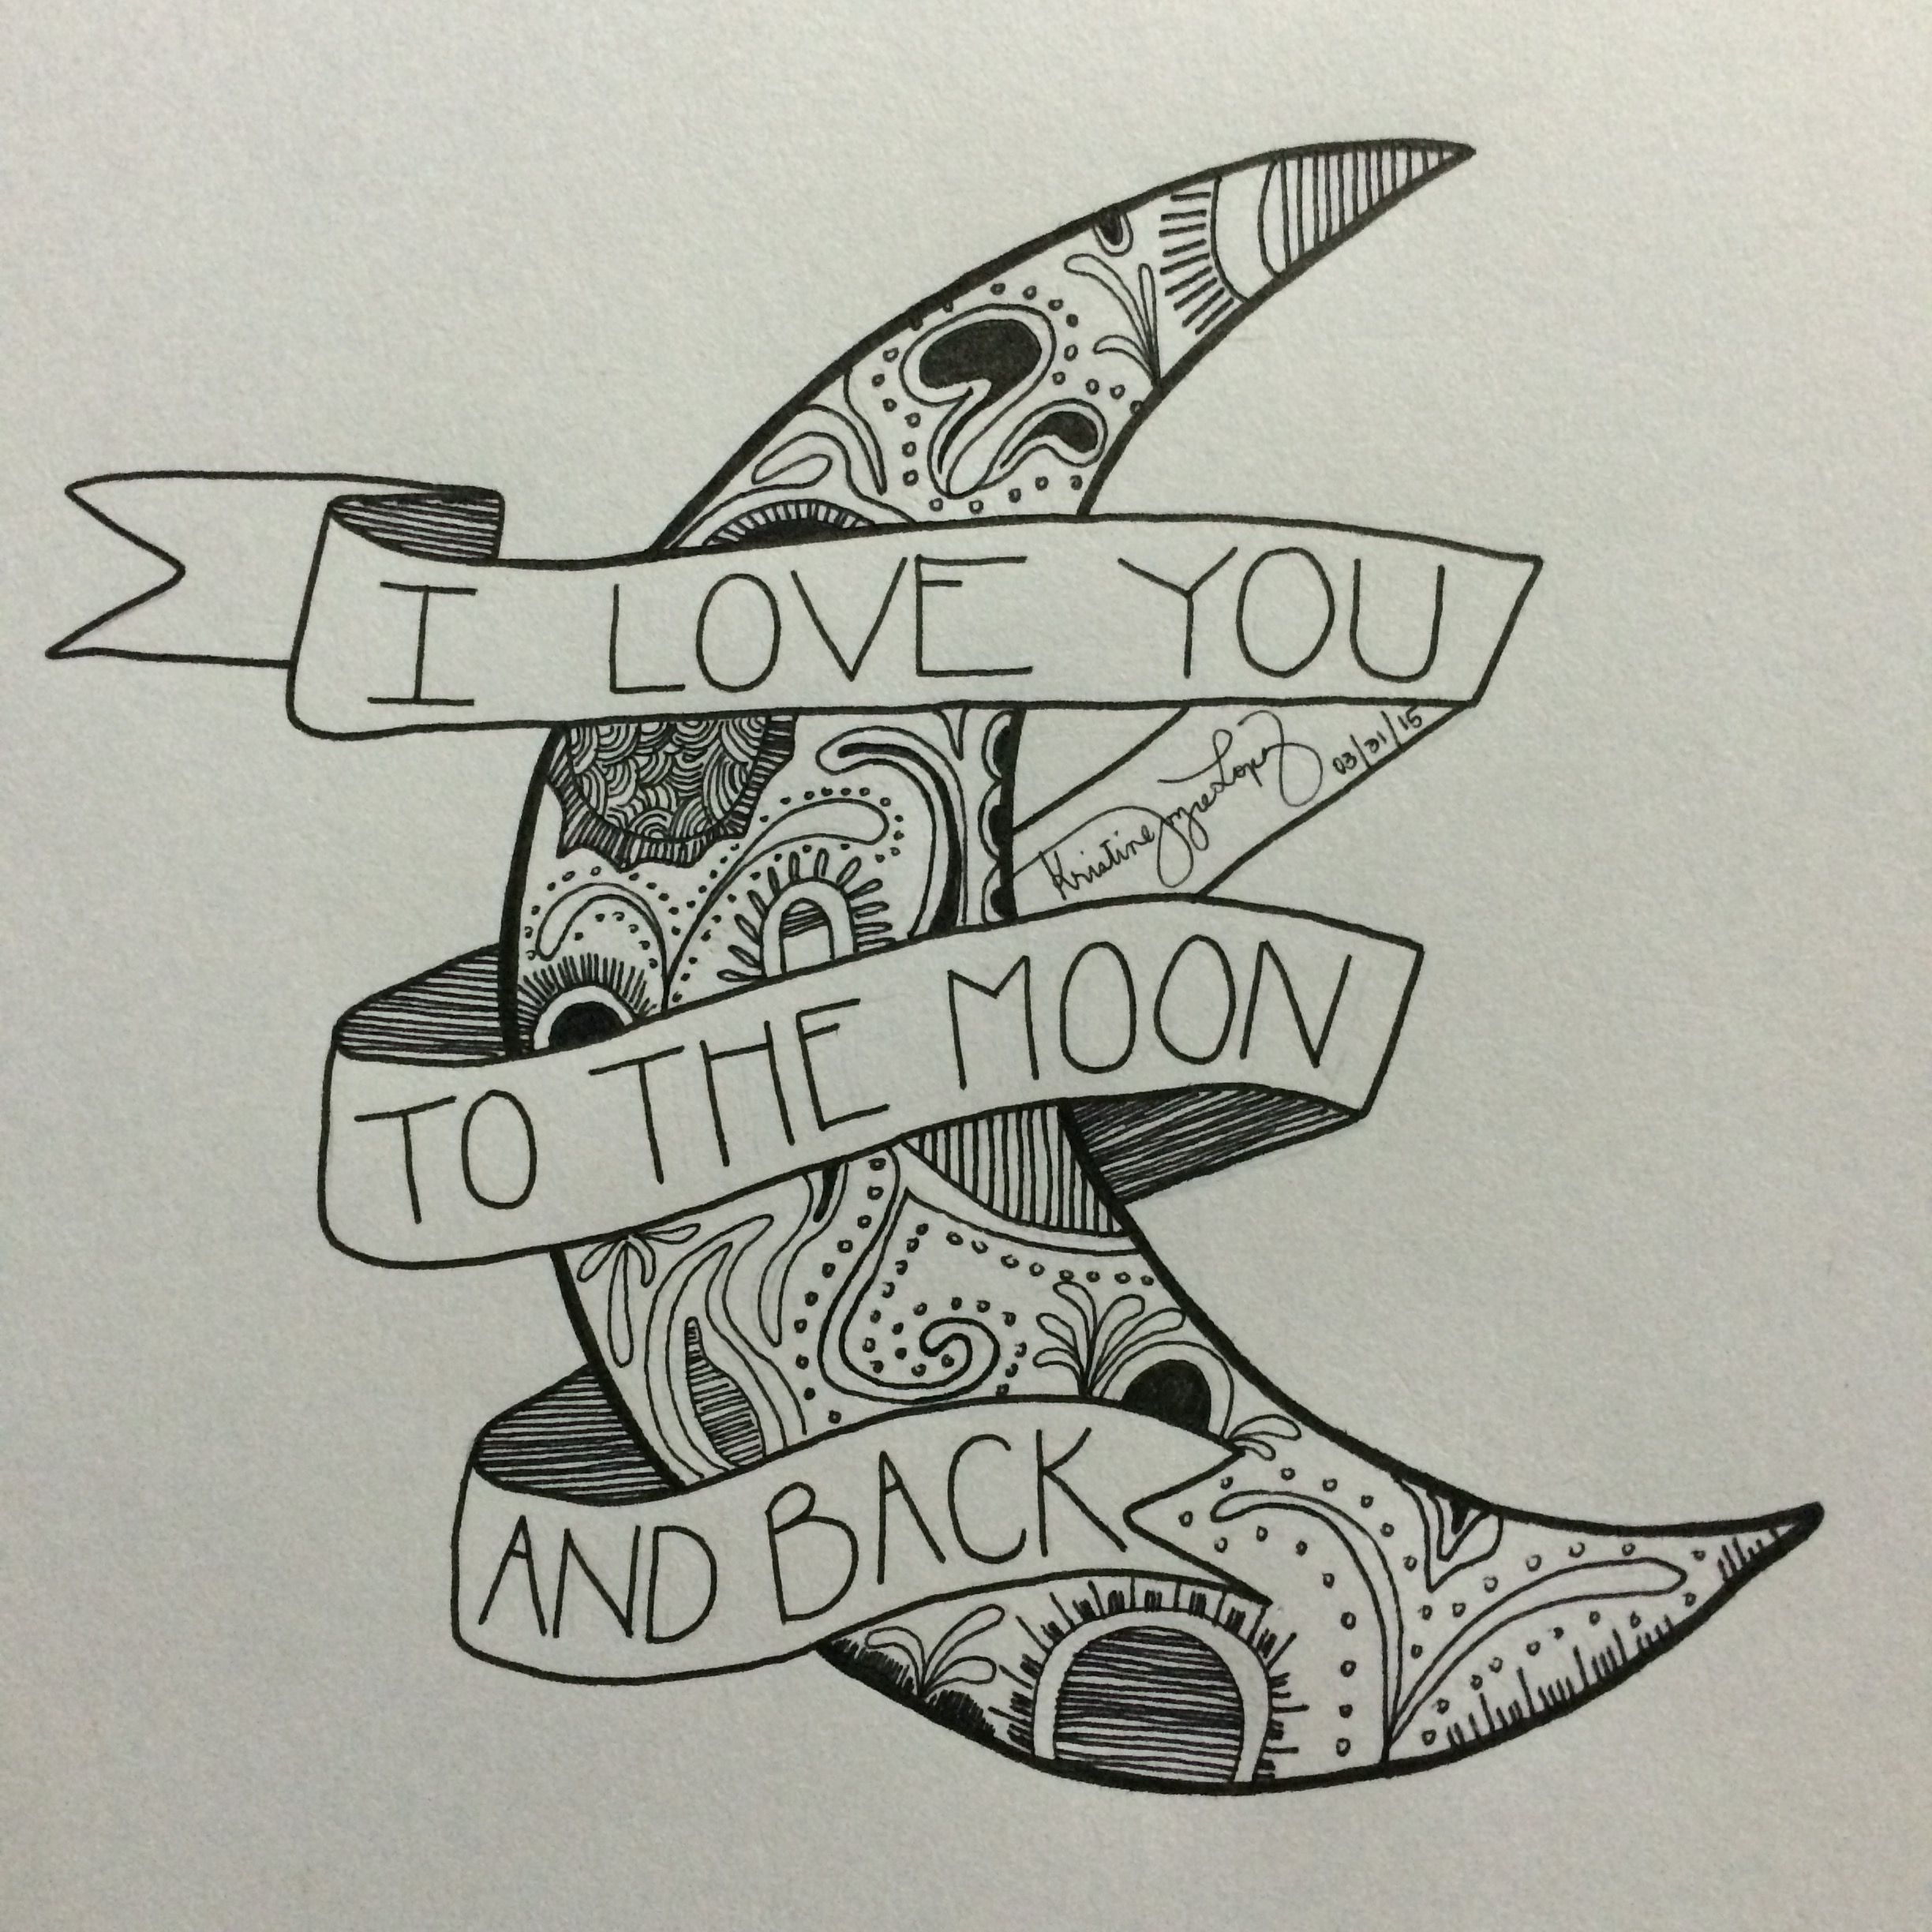 I Love You To The Moon And Back Calligraphy Calligratype Typography Lettering Kligraphy To The Moon And Back Tattoo Love Tattoos Unity Tattoo